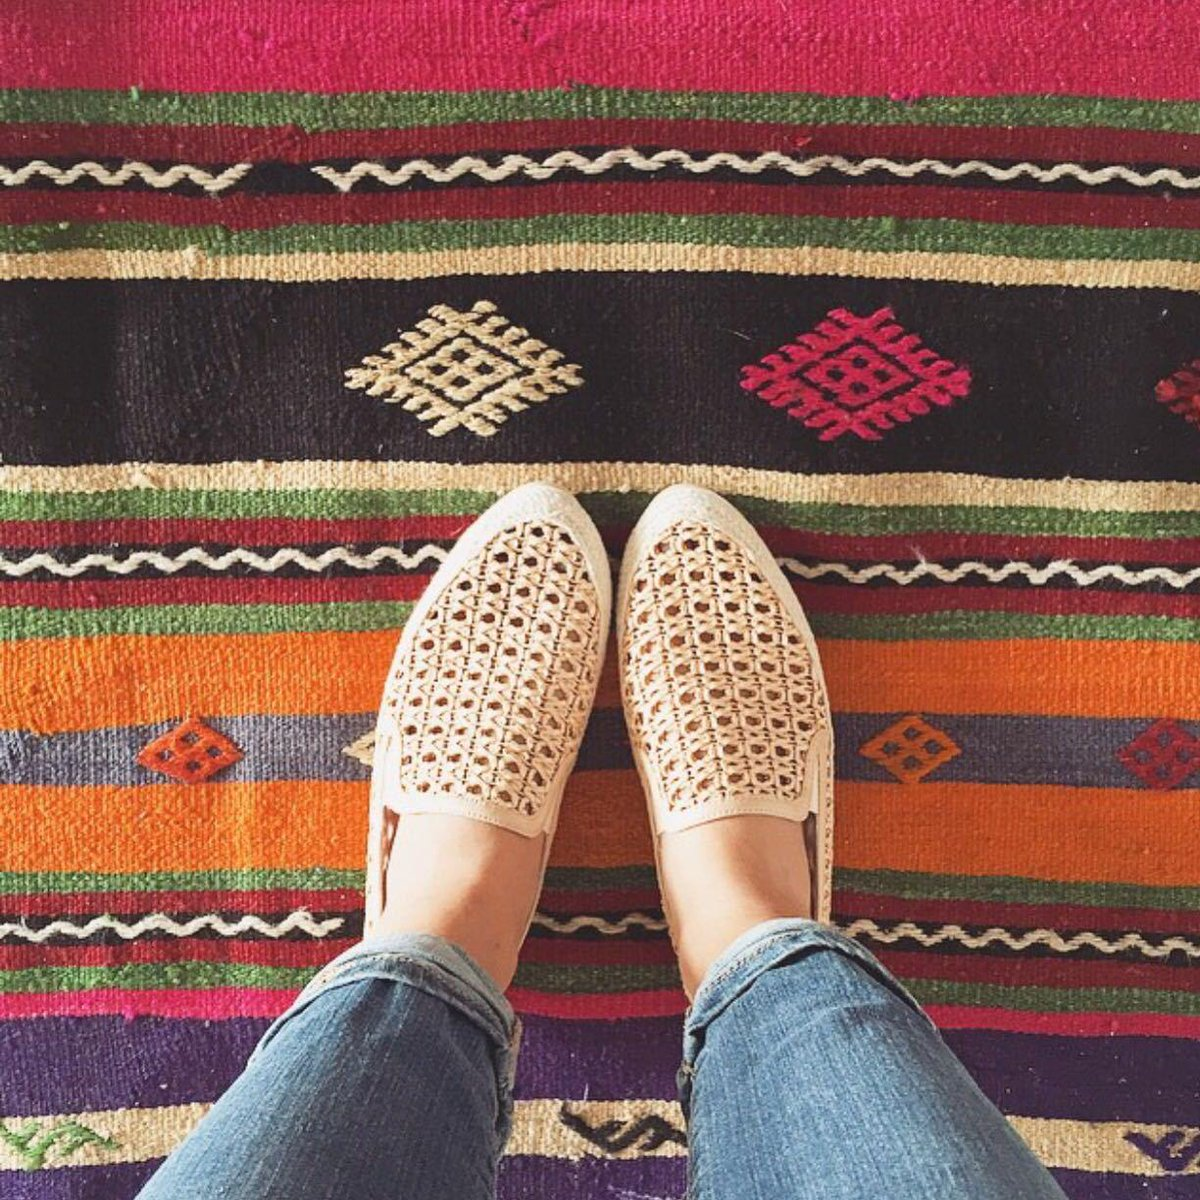 We're celebrating the unofficial start of summer with our favorite slip-ons. Follow us & RT to win a pair! #giveaway http://t.co/gl1pl43PbV